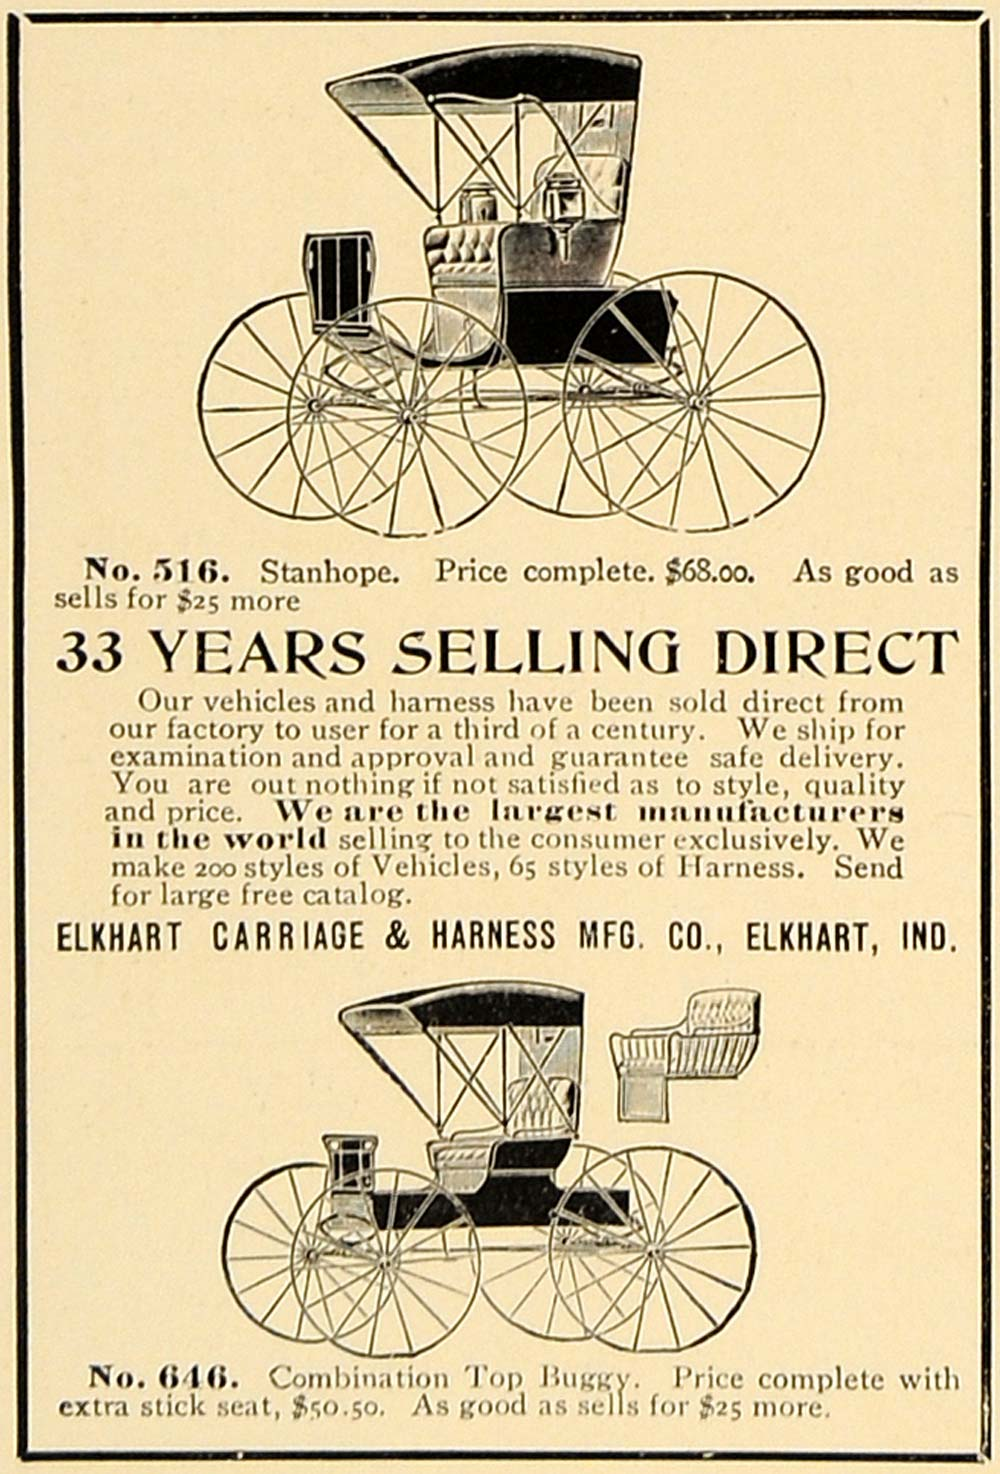 1906 Ad Elkhart Carriage Harness Models Pricing Indiana - ORIGINAL CL4